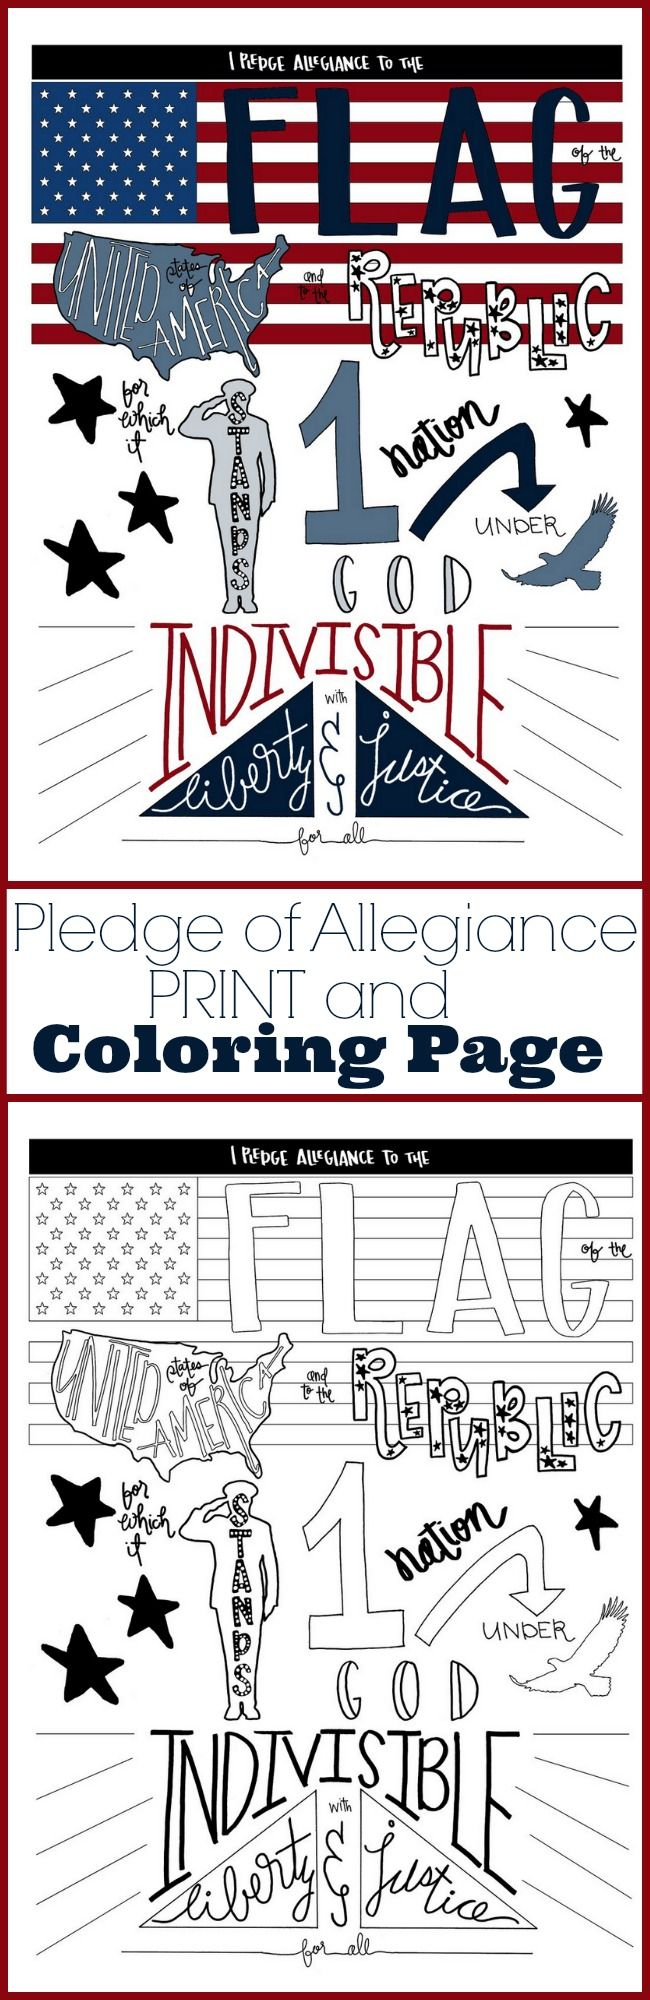 Coloring pages for dots for 4 of july - A Hand Lettered Pledge Of Allegiance Coloring Page Printable Capturing Joy With Kristen Duke